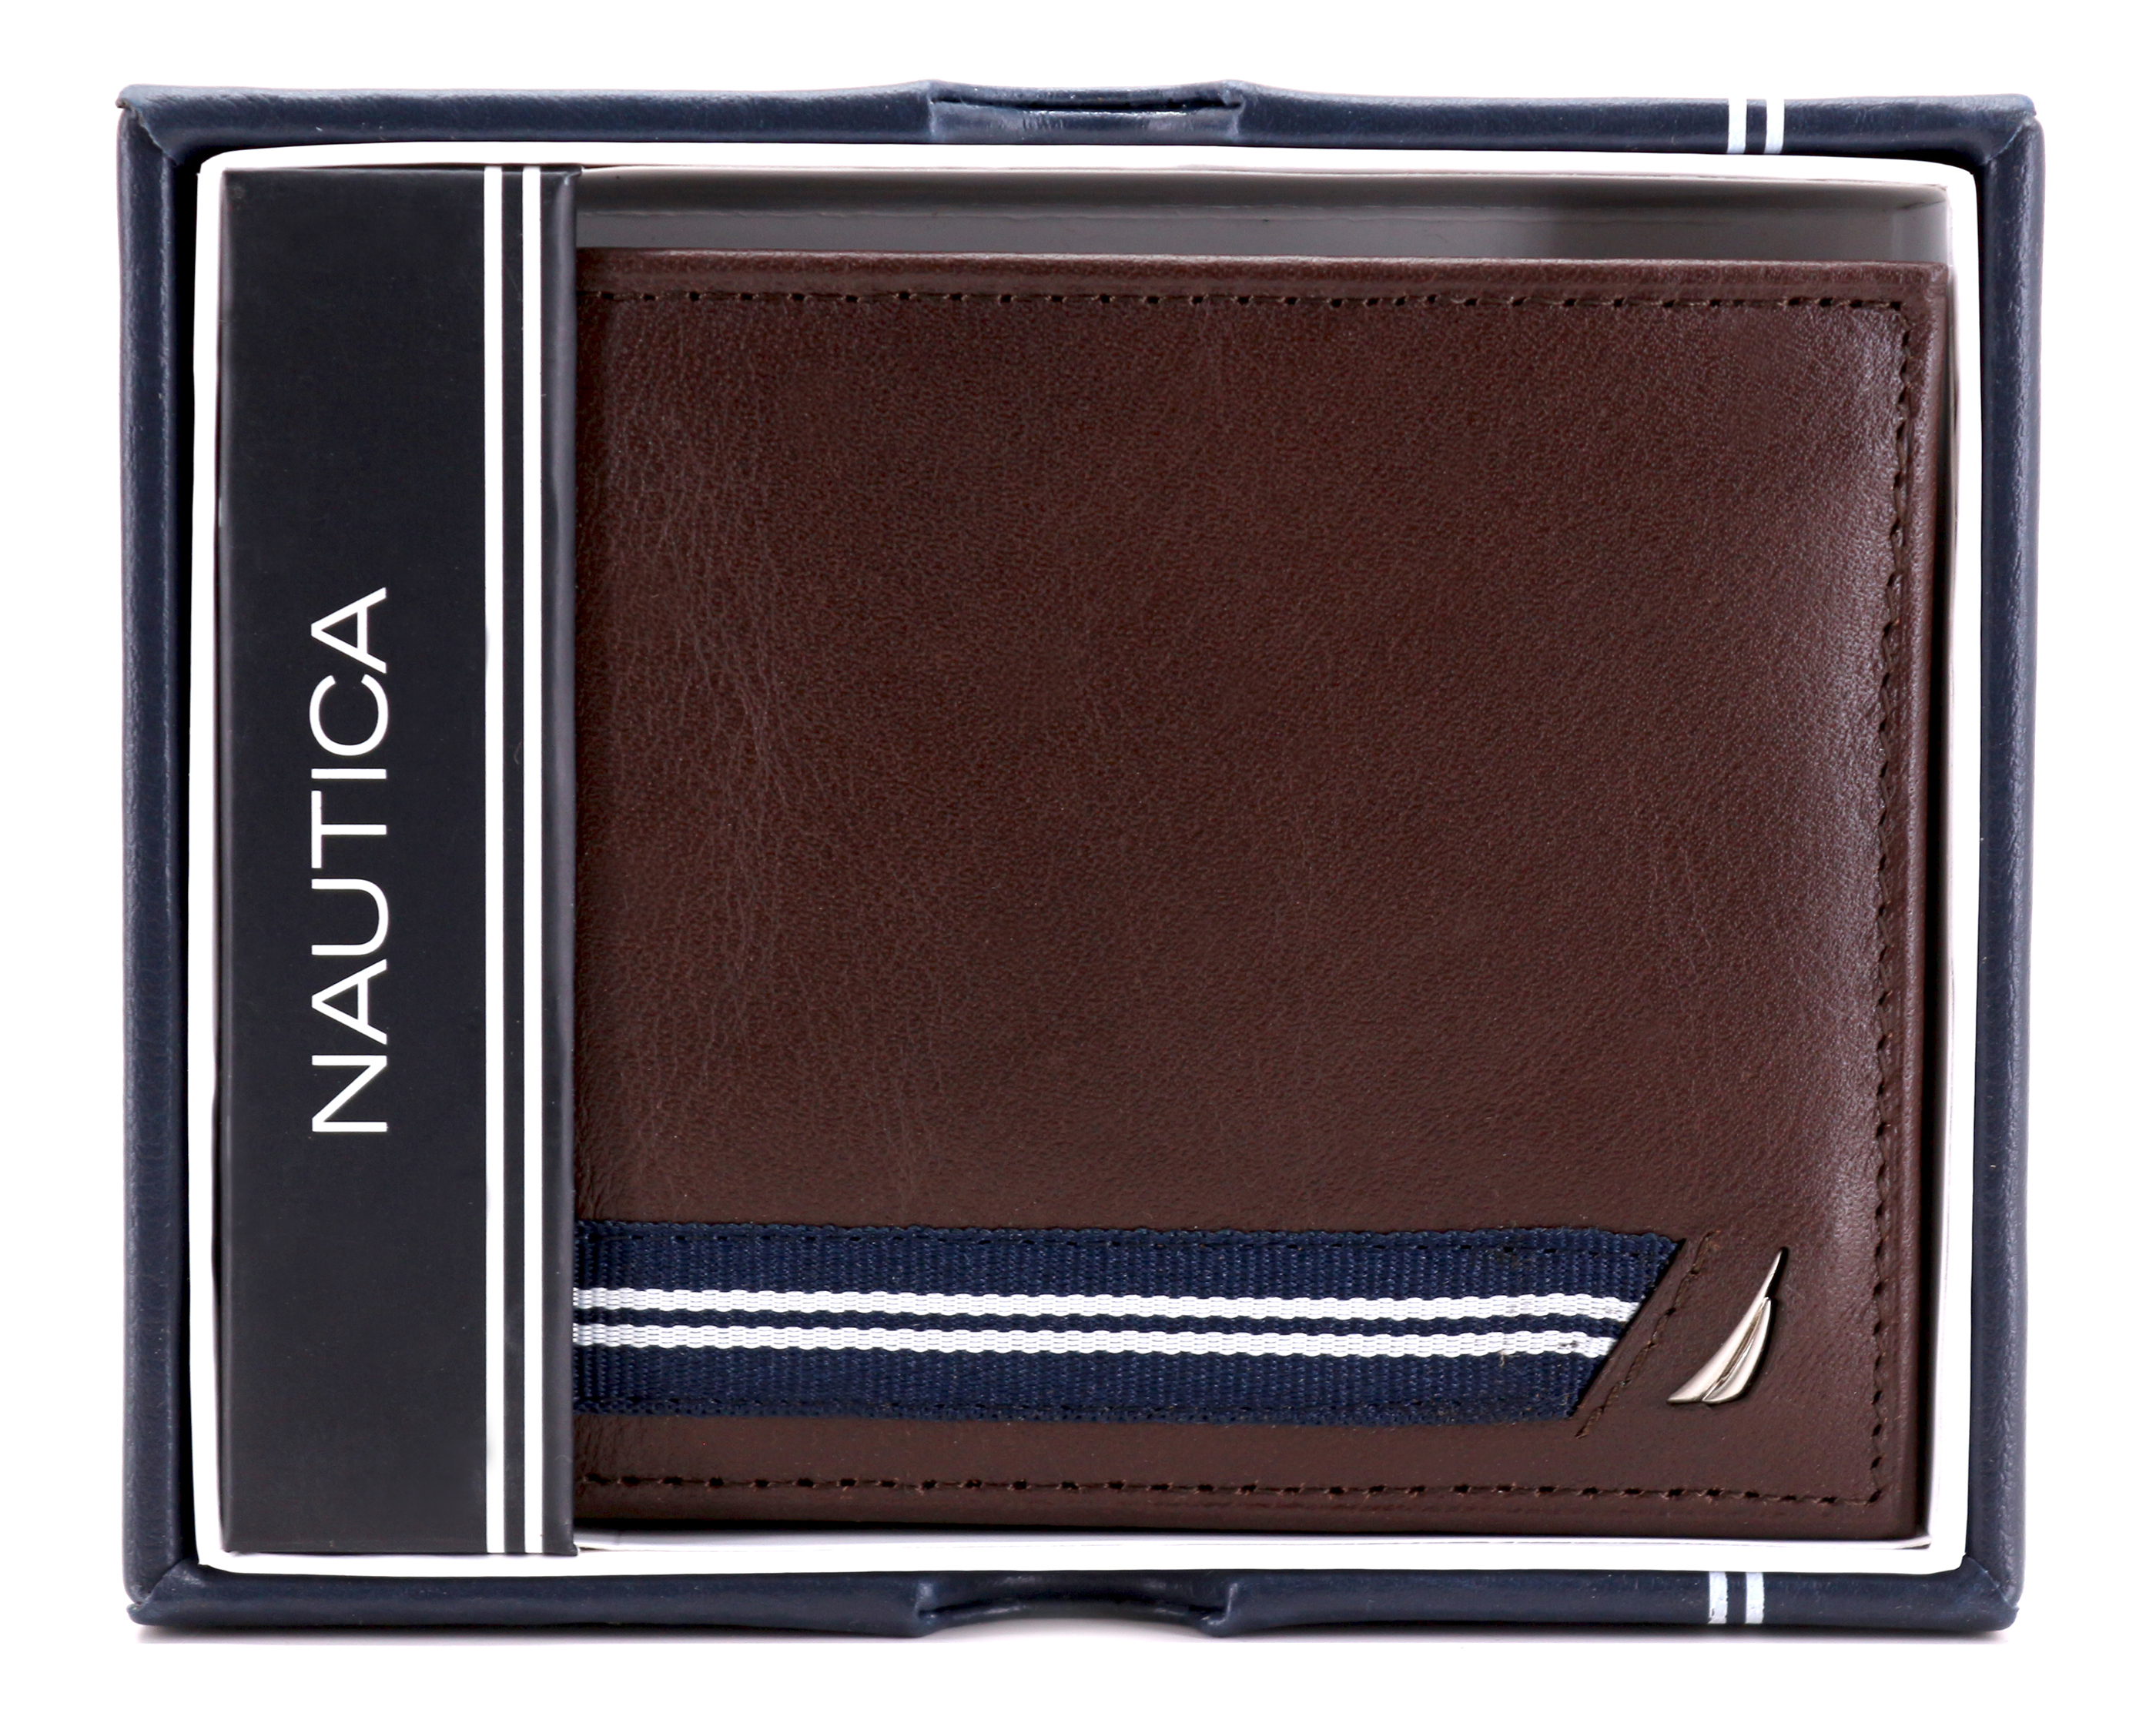 Nautica-Men-039-s-Genuine-Leather-Credit-Card-ID-Double-Billfold-Passcase-Wallet thumbnail 21